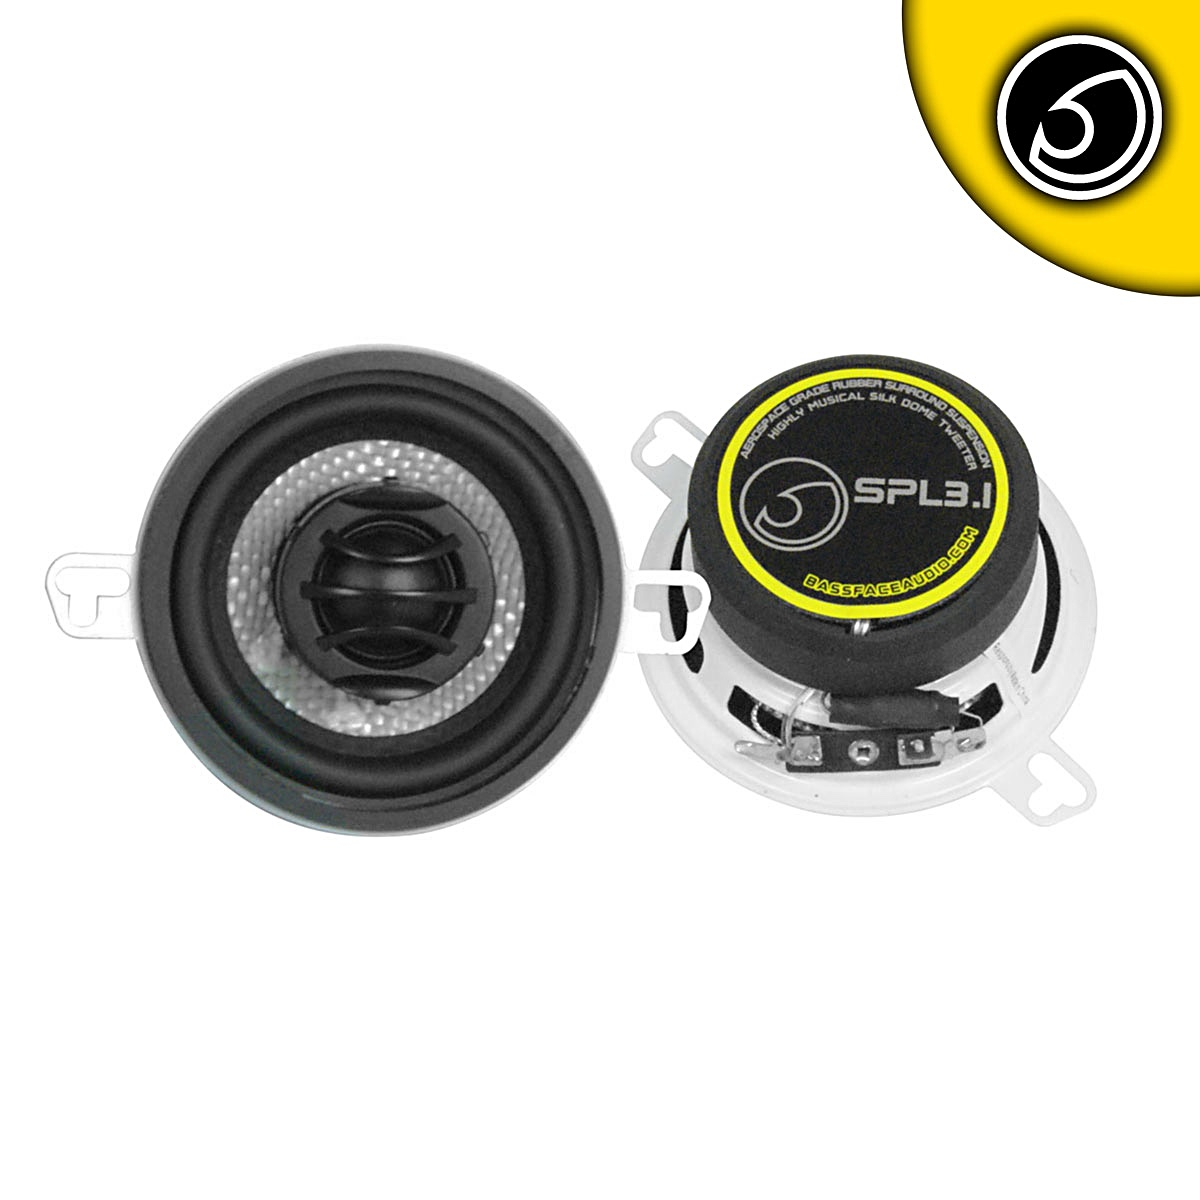 "Bassface SPL3.1 200w 3.5"" Inch 8cm Coaxial 2Way Car Door Dashboard Speakers Pair"